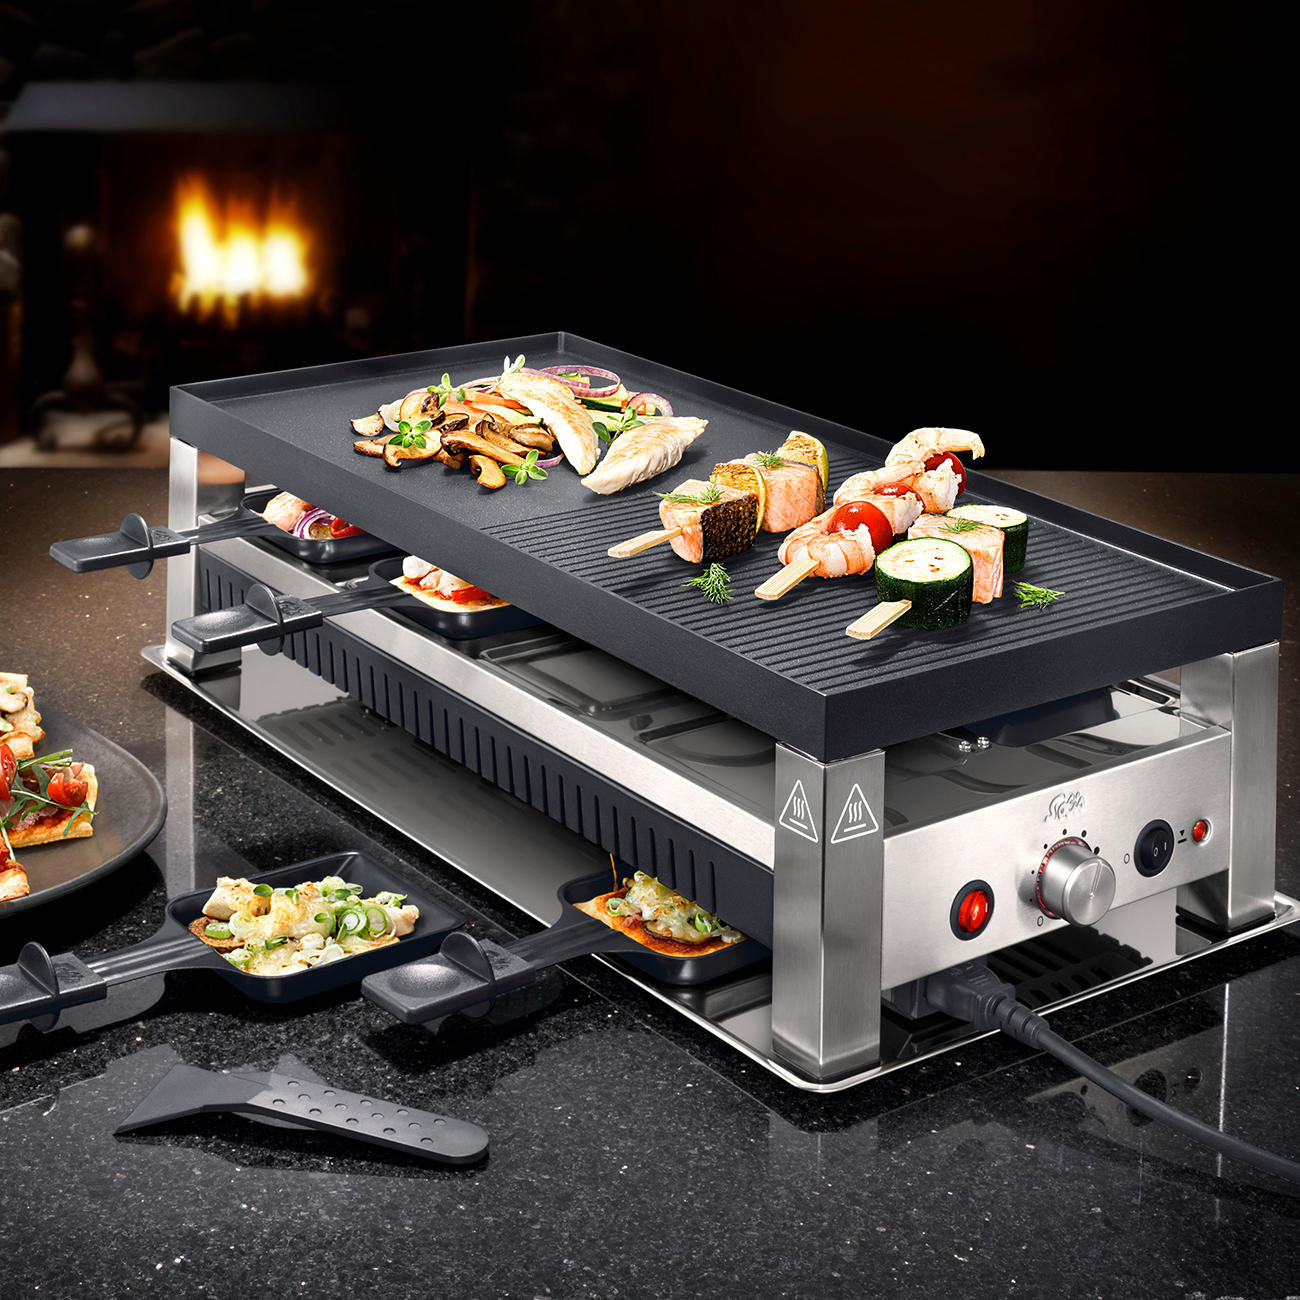 buy solis 5 in 1 raclette grill online. Black Bedroom Furniture Sets. Home Design Ideas